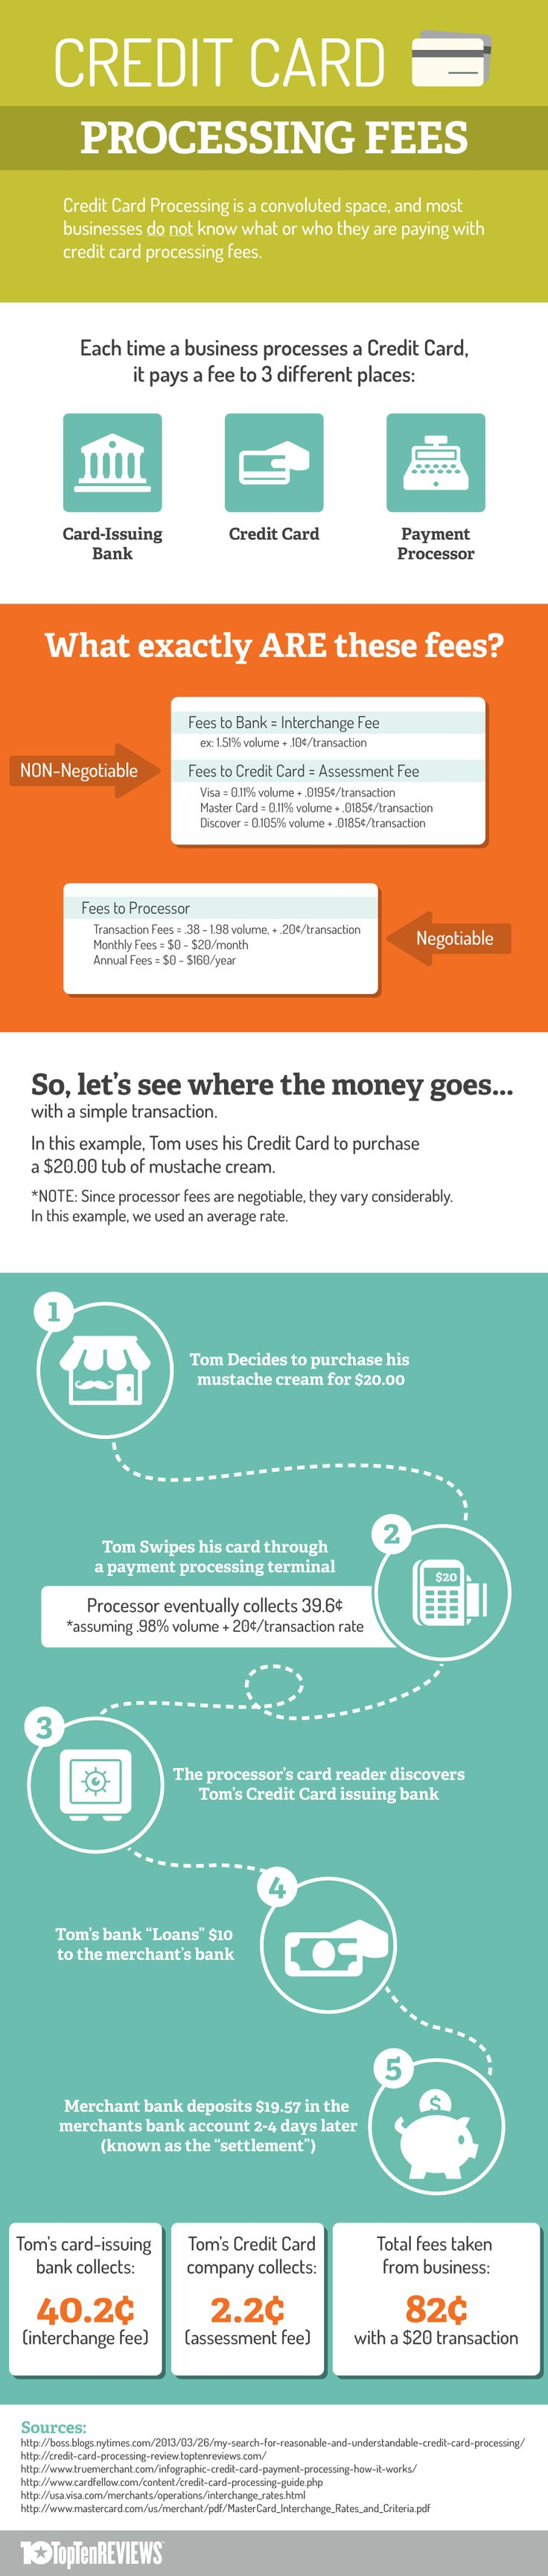 45 best credit card processing images on pinterest credit cards credit card processing fees infographic reheart Images